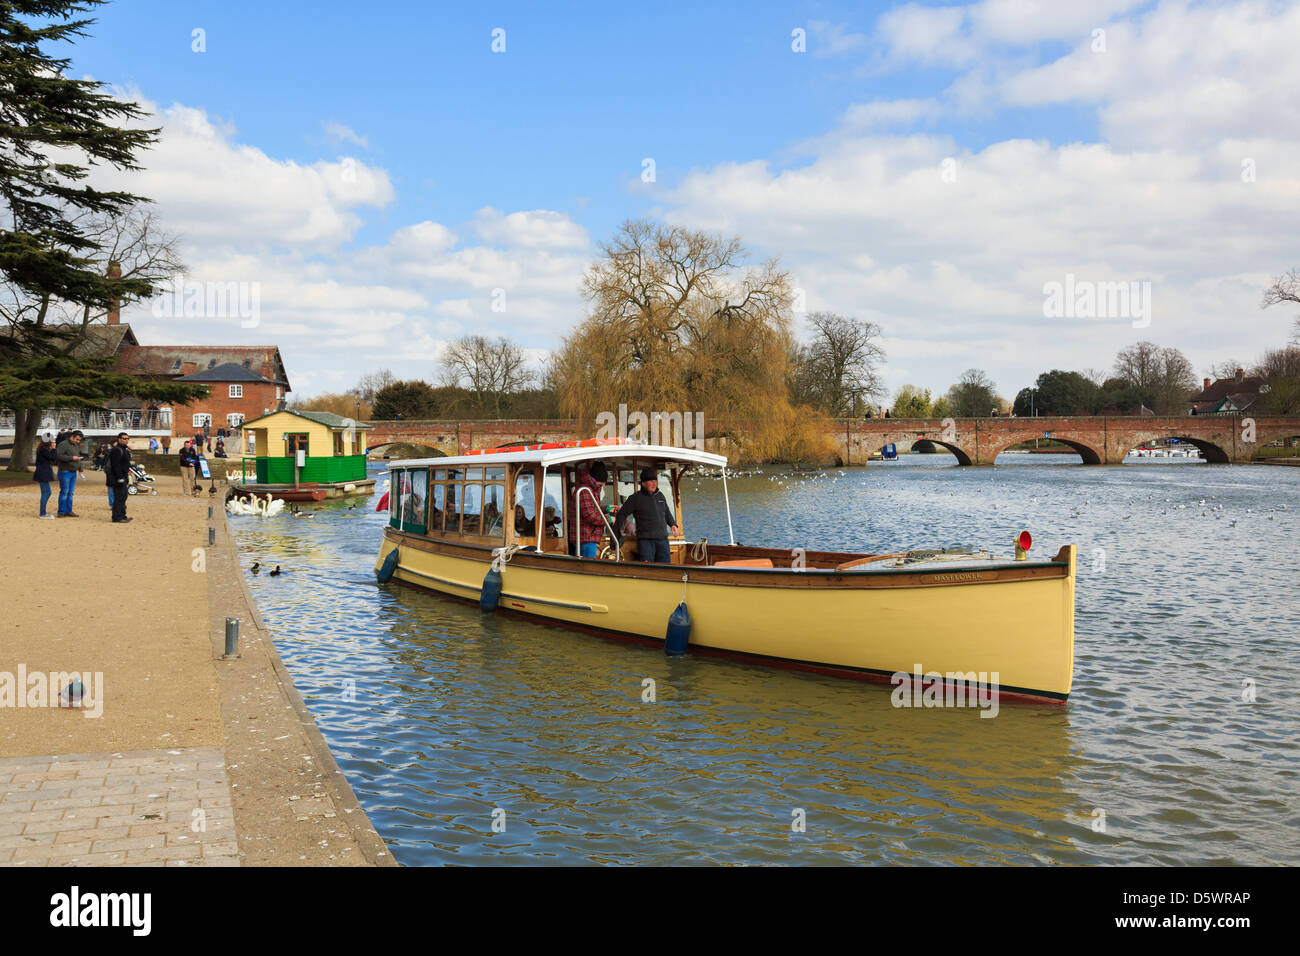 Scene with tourists on a sightseeing cruise boat on the River Avon in Stratford-upon-Avon, Warwickshire, England, - Stock Image